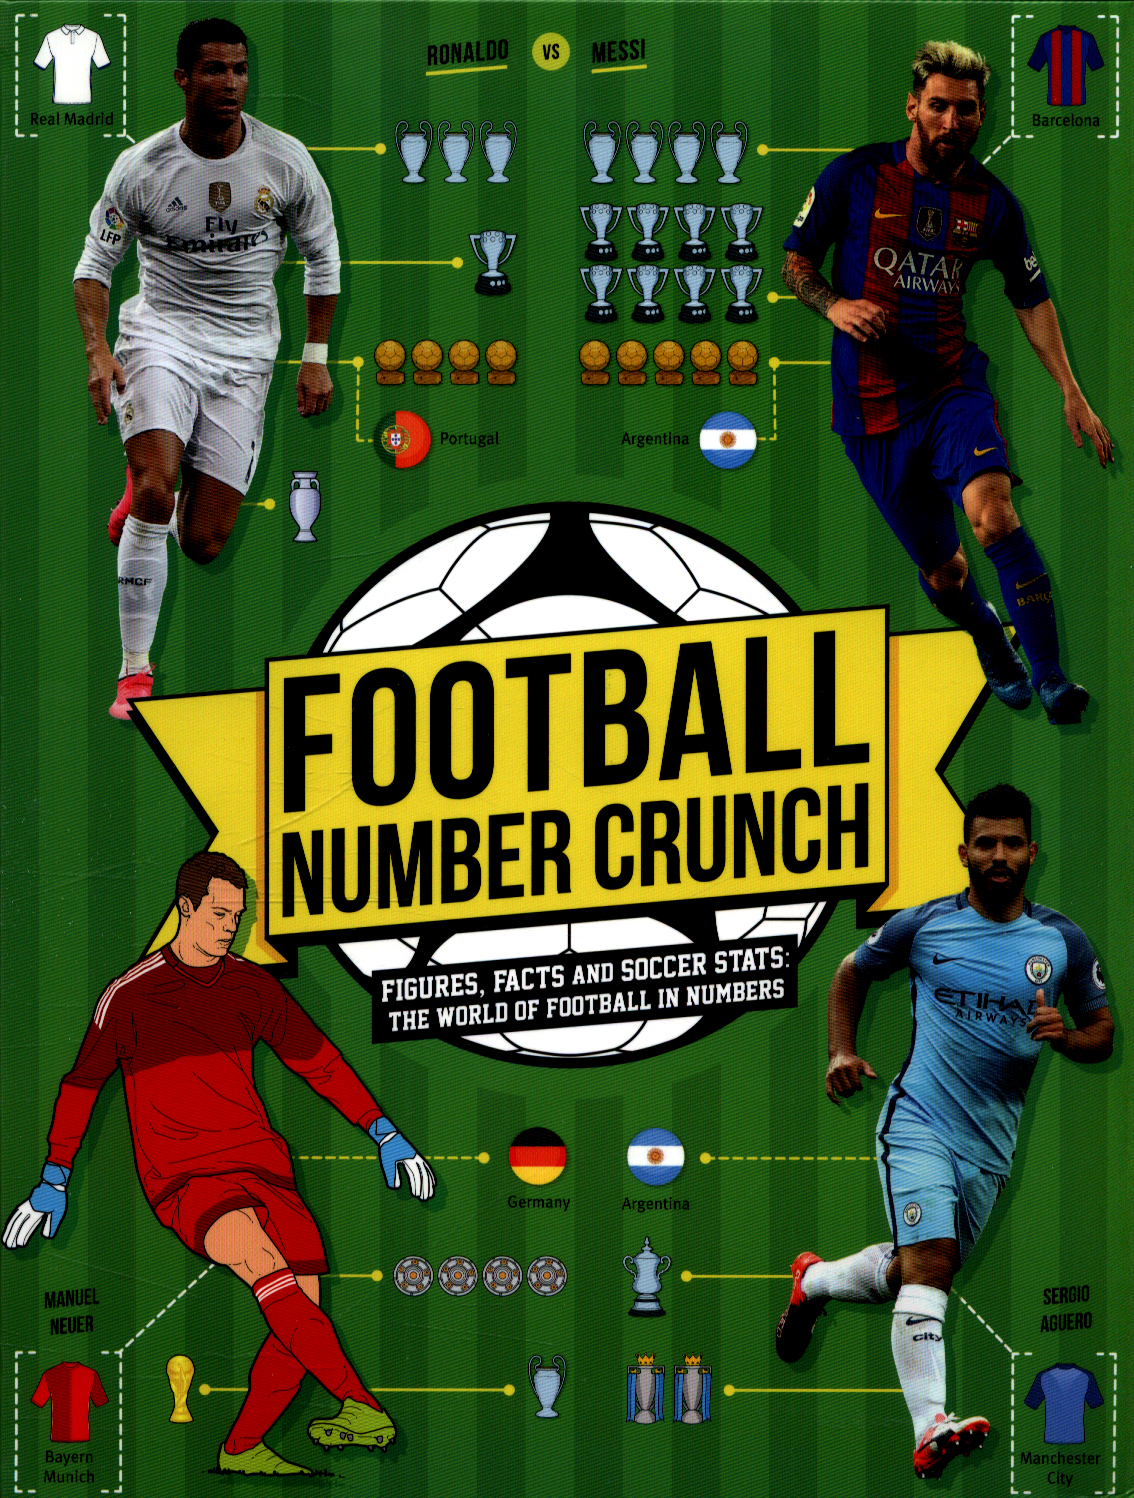 Football number crunch : figures, facts and soccer stats - the world